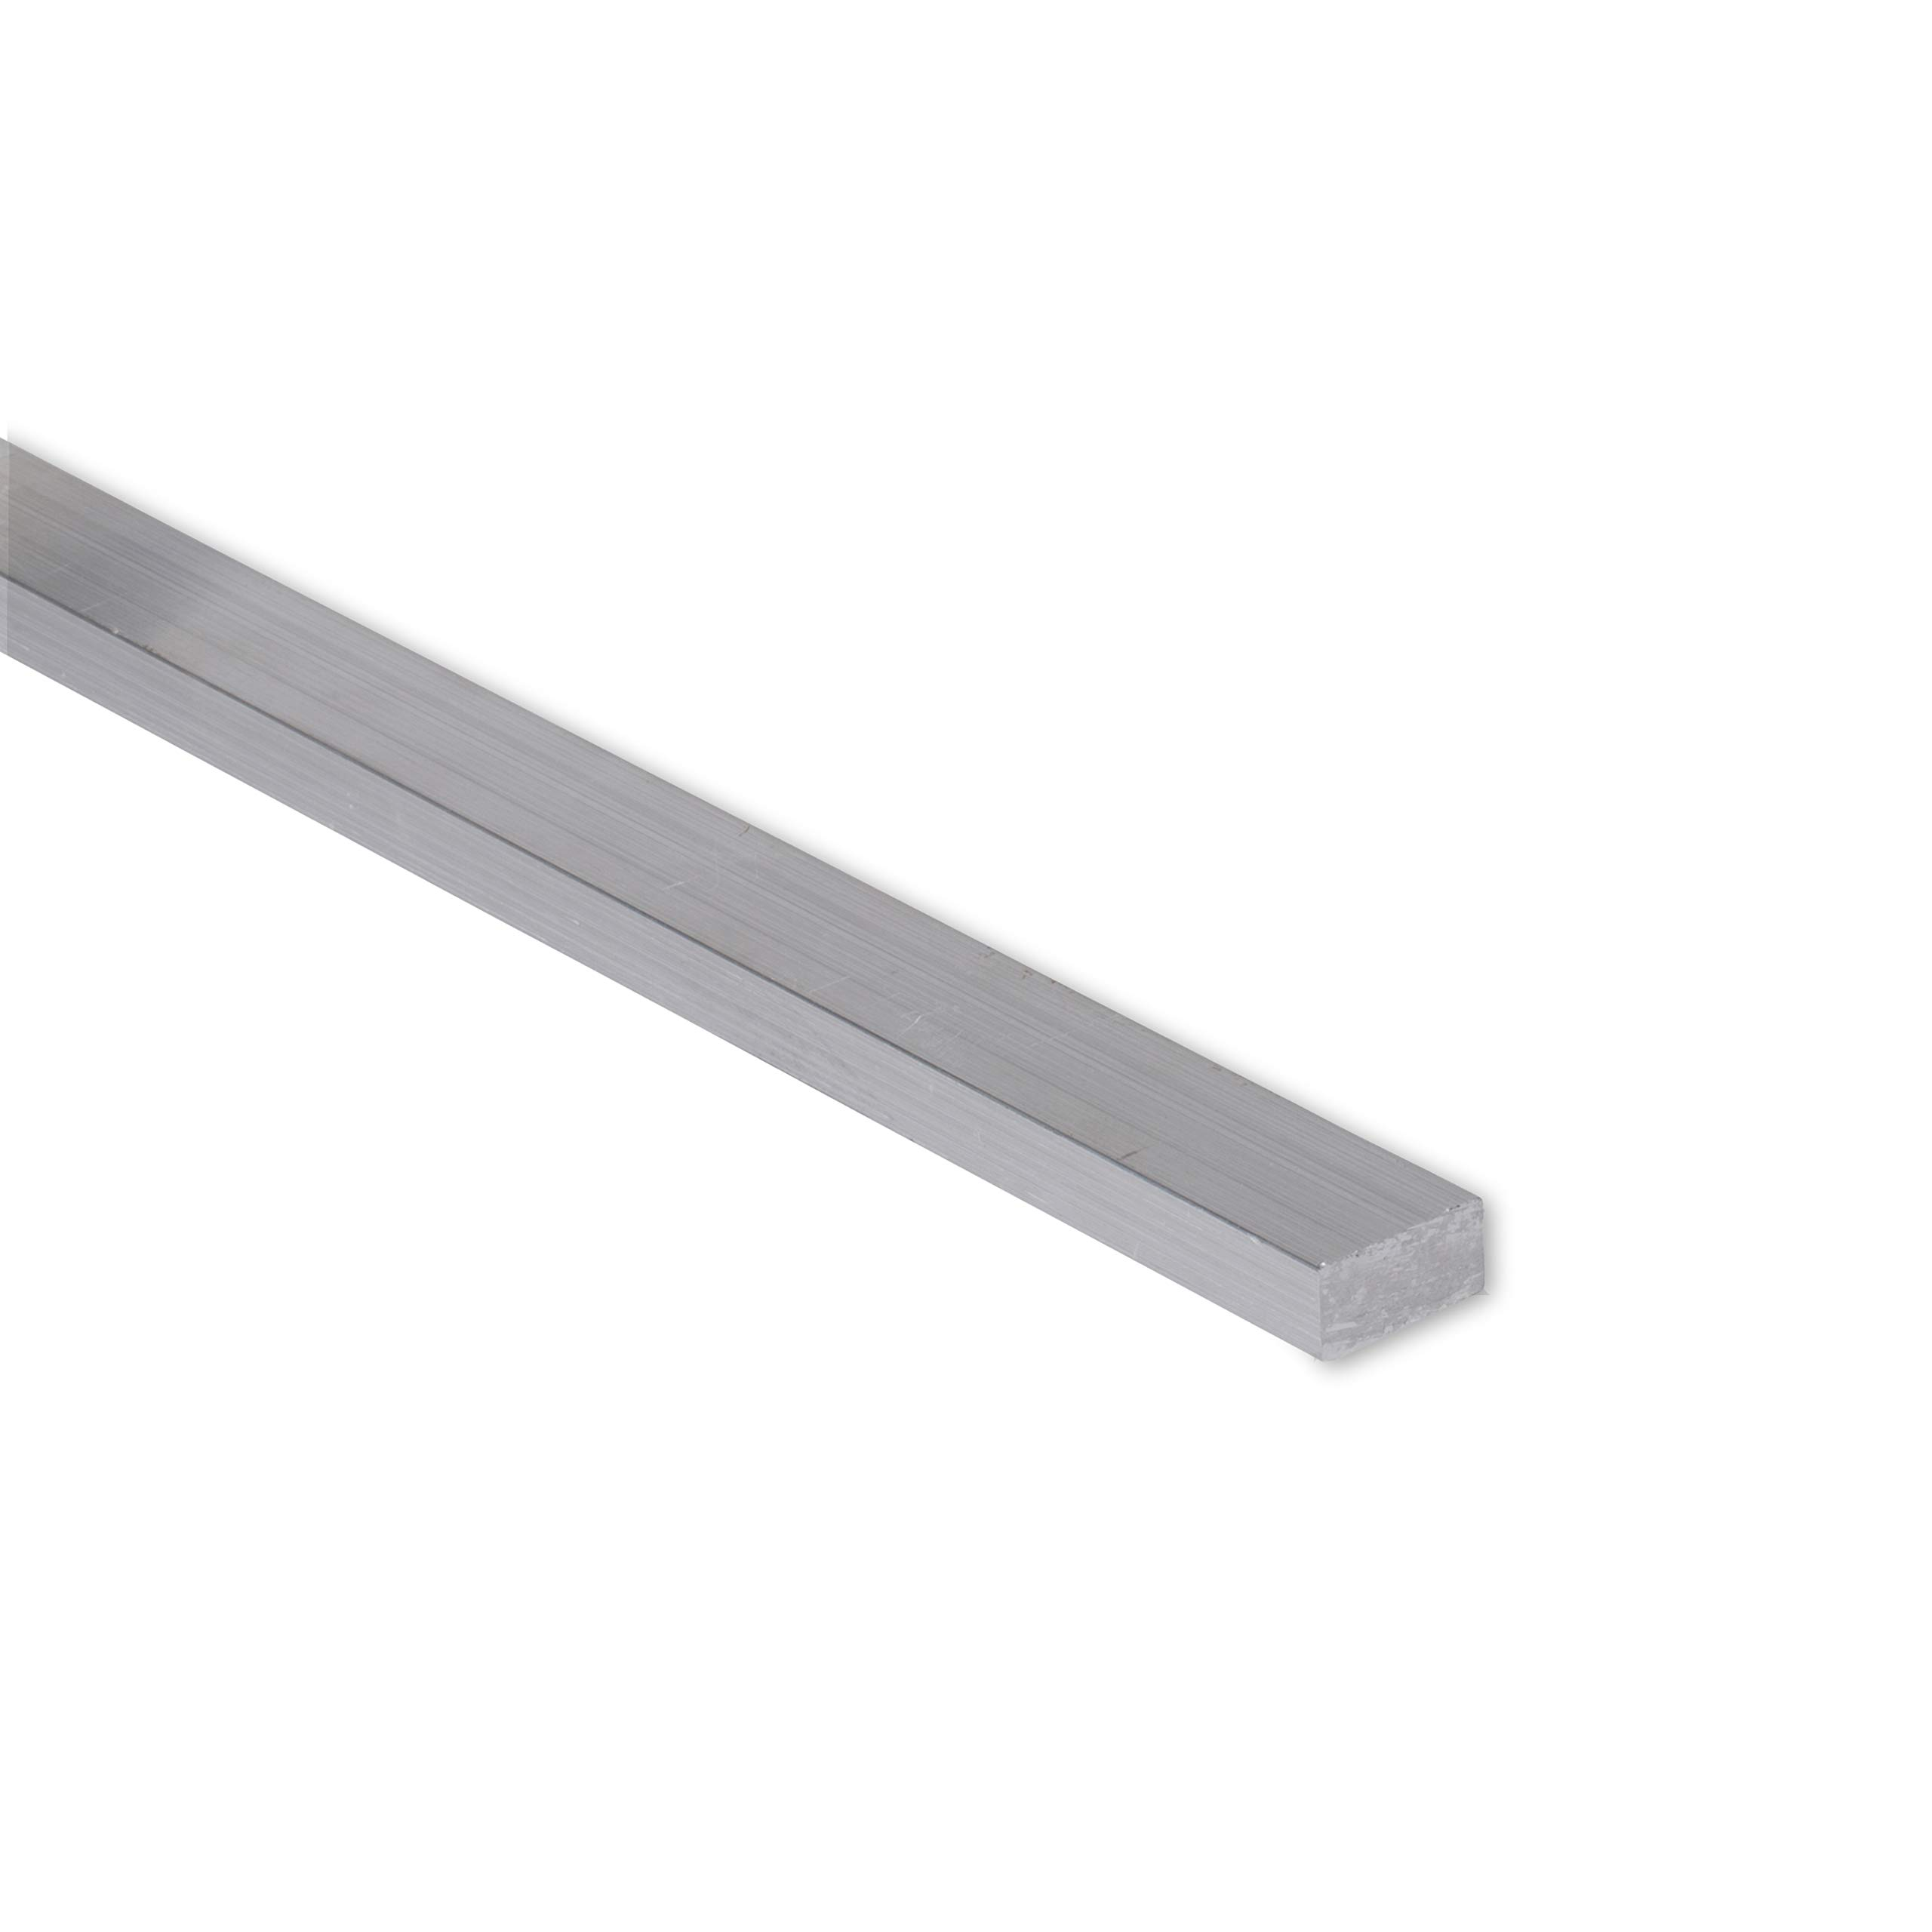 1/4'' X 2'' Stainless Steel Flat Bar, 304 General Purpose Plate, 36'' Length, Mill Stock, 0.25 inch Thick by Remington Industries